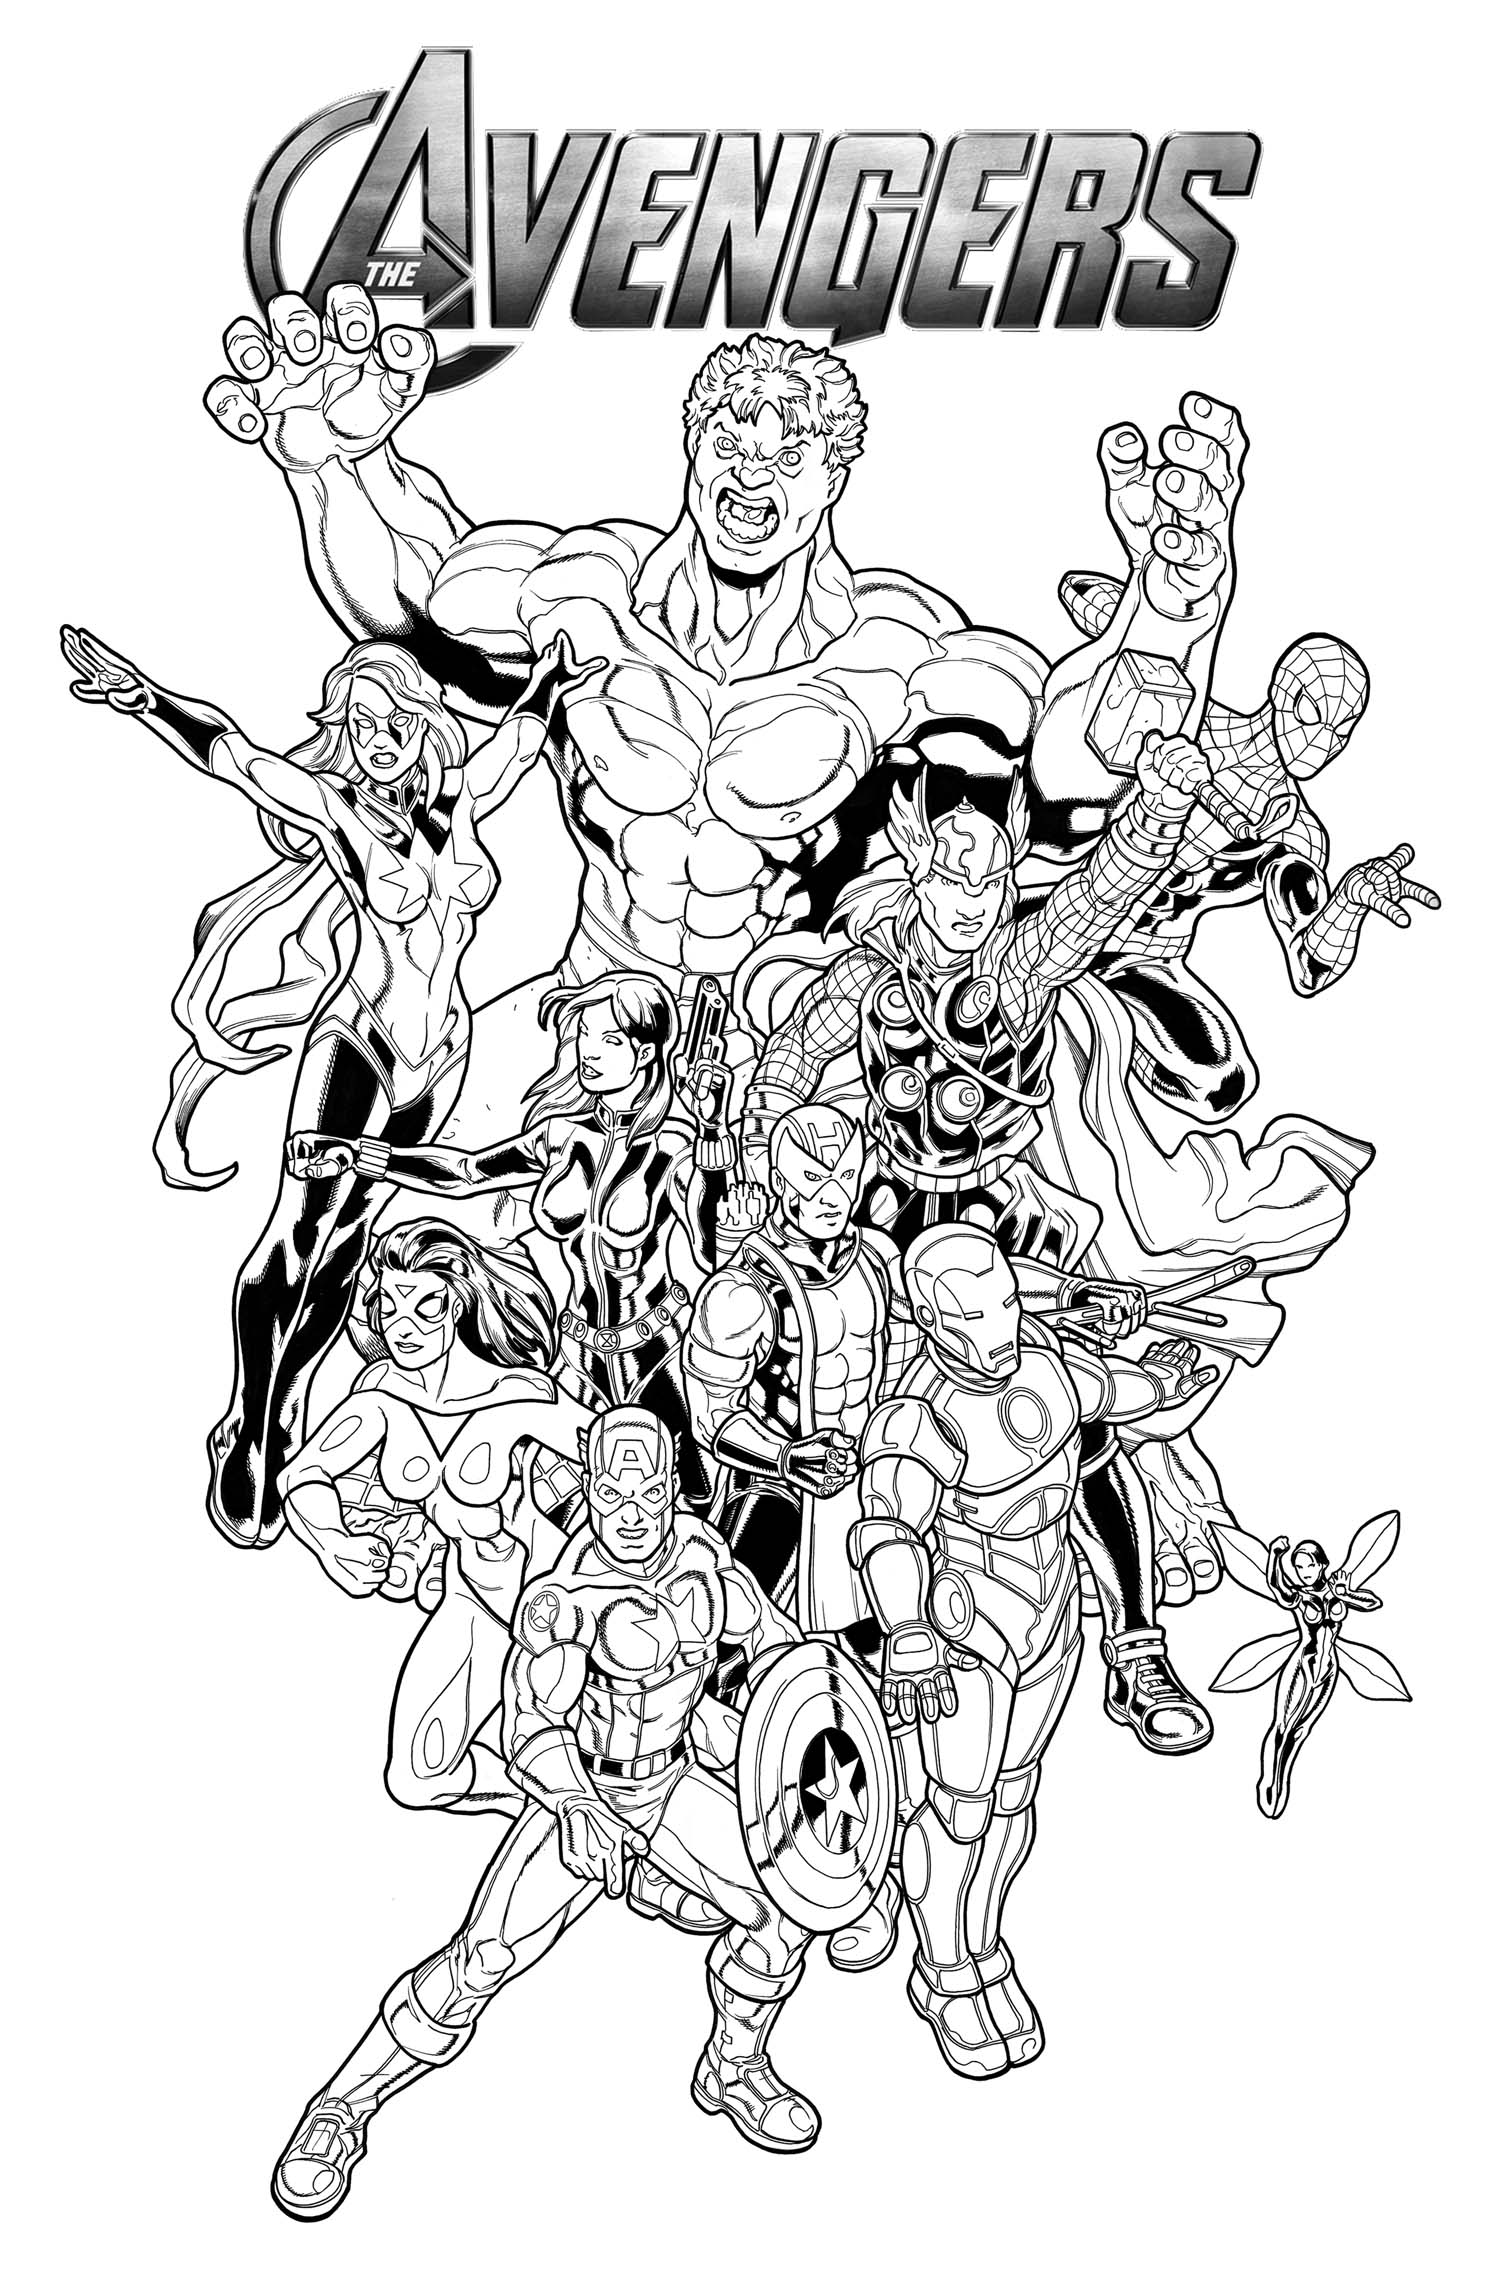 Ladybug And Cat Noir Coloring Pages likewise Iron Man Superhero together with Avengers also  moreover Thanos Infinity Gauntlet Coloring Pages Drawing By George Perez. on marvel coloring pages for adults